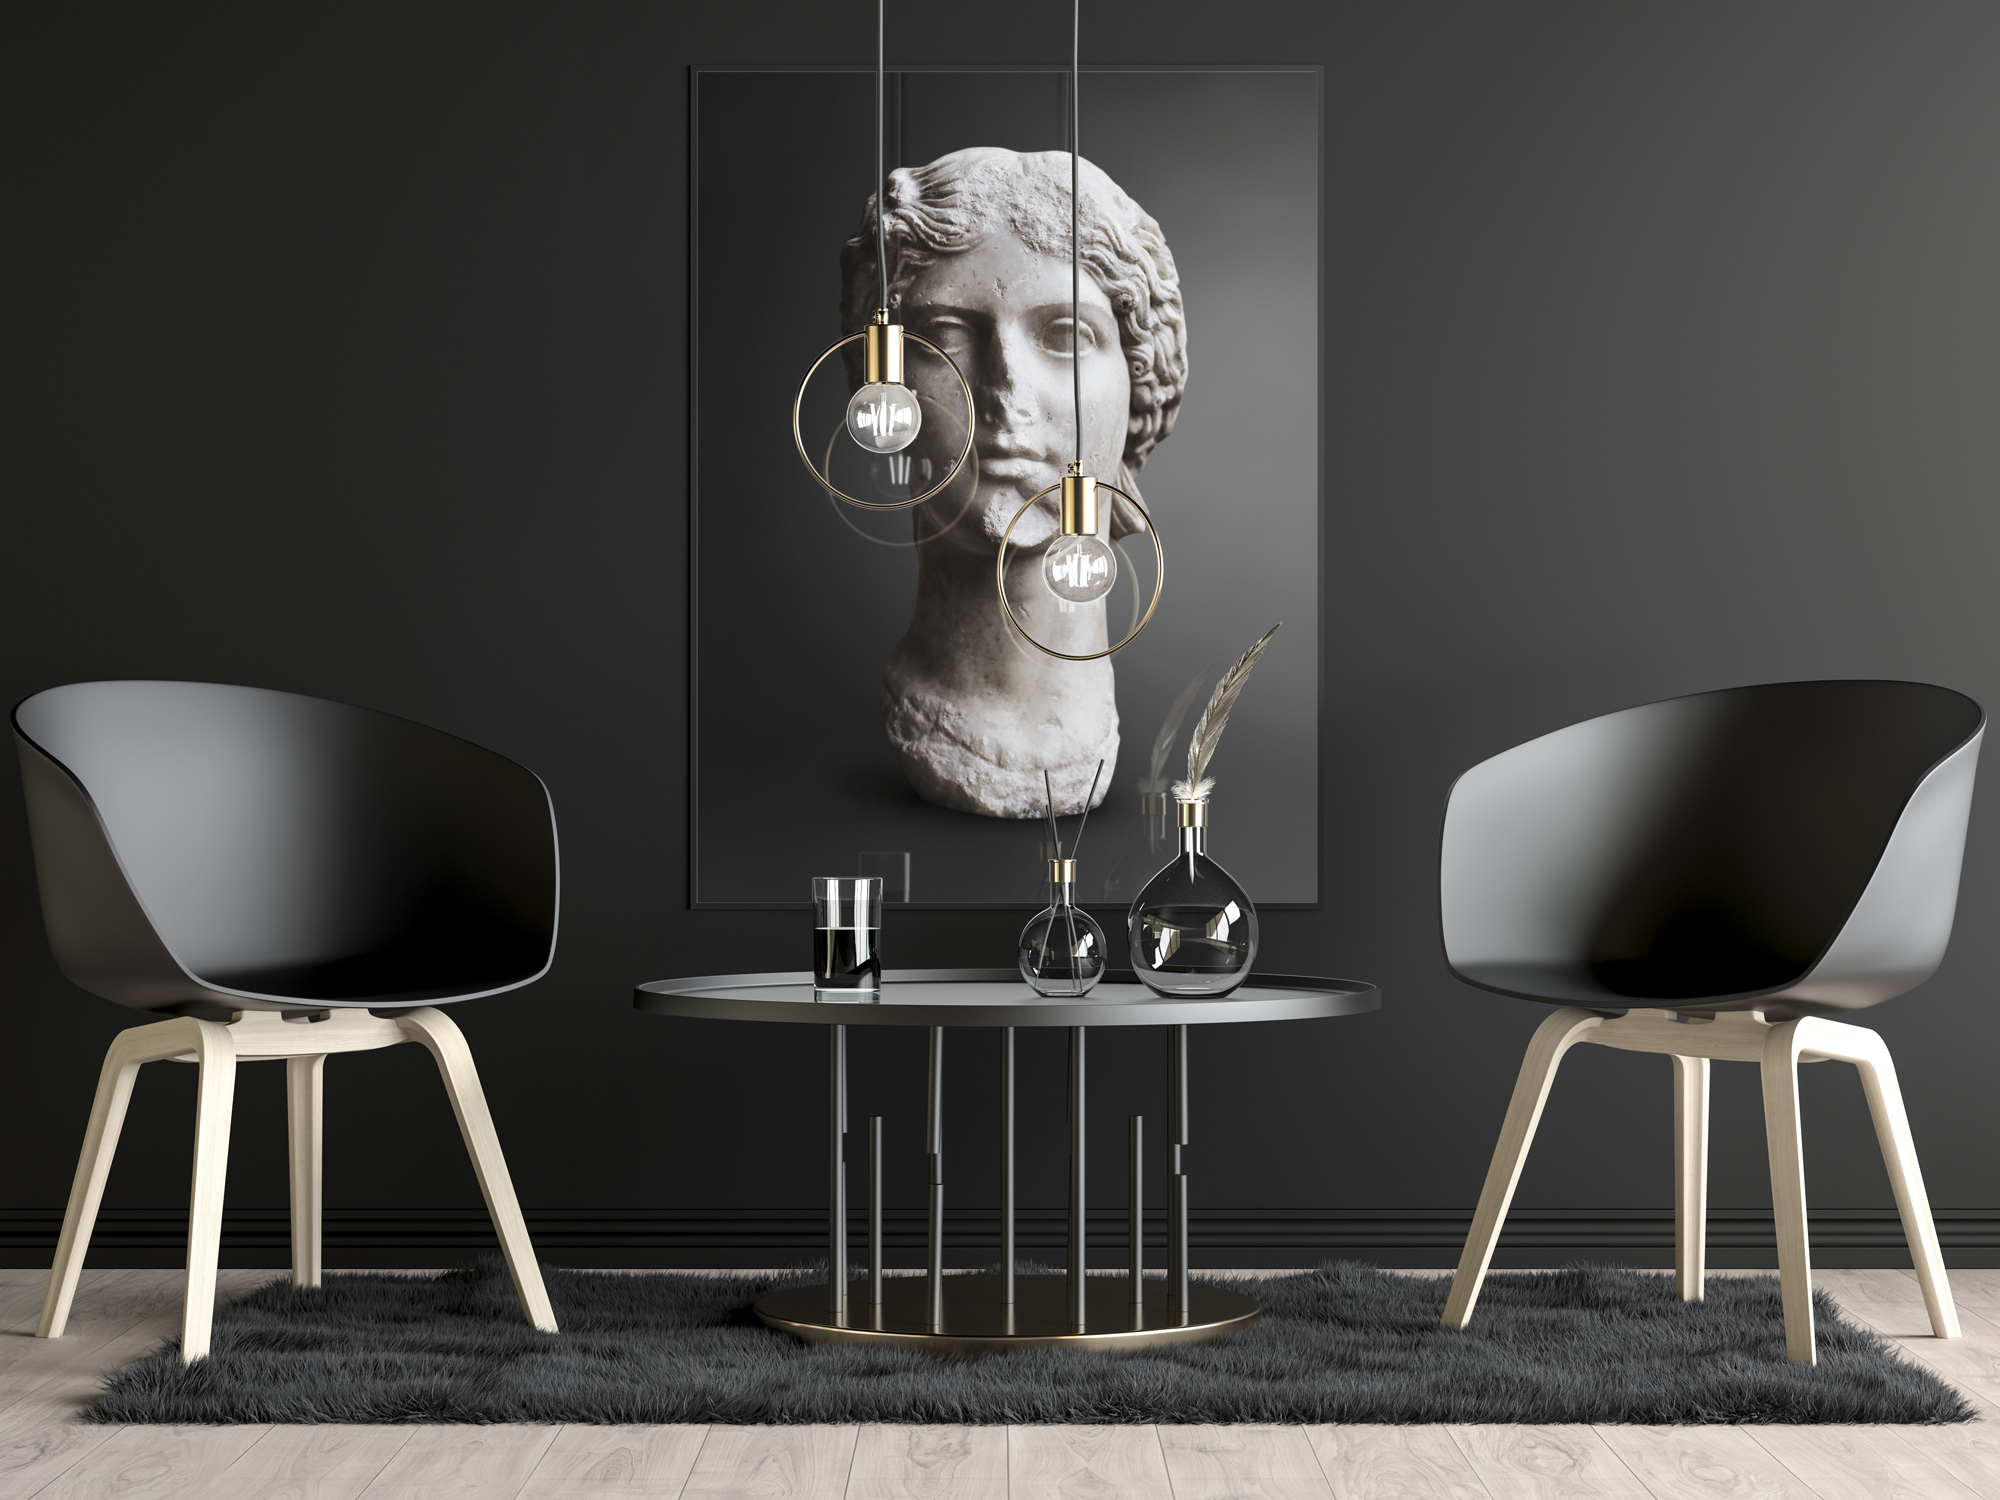 Photography of Framed photo on wall of the Sculpture of Agrippina the Elder, mother of Roman Emperor Caligula, part of house decoration table and two chairs. Part of the Ancient Influencers Photography series by Maria Queralt, Louvre Museum. Photography an